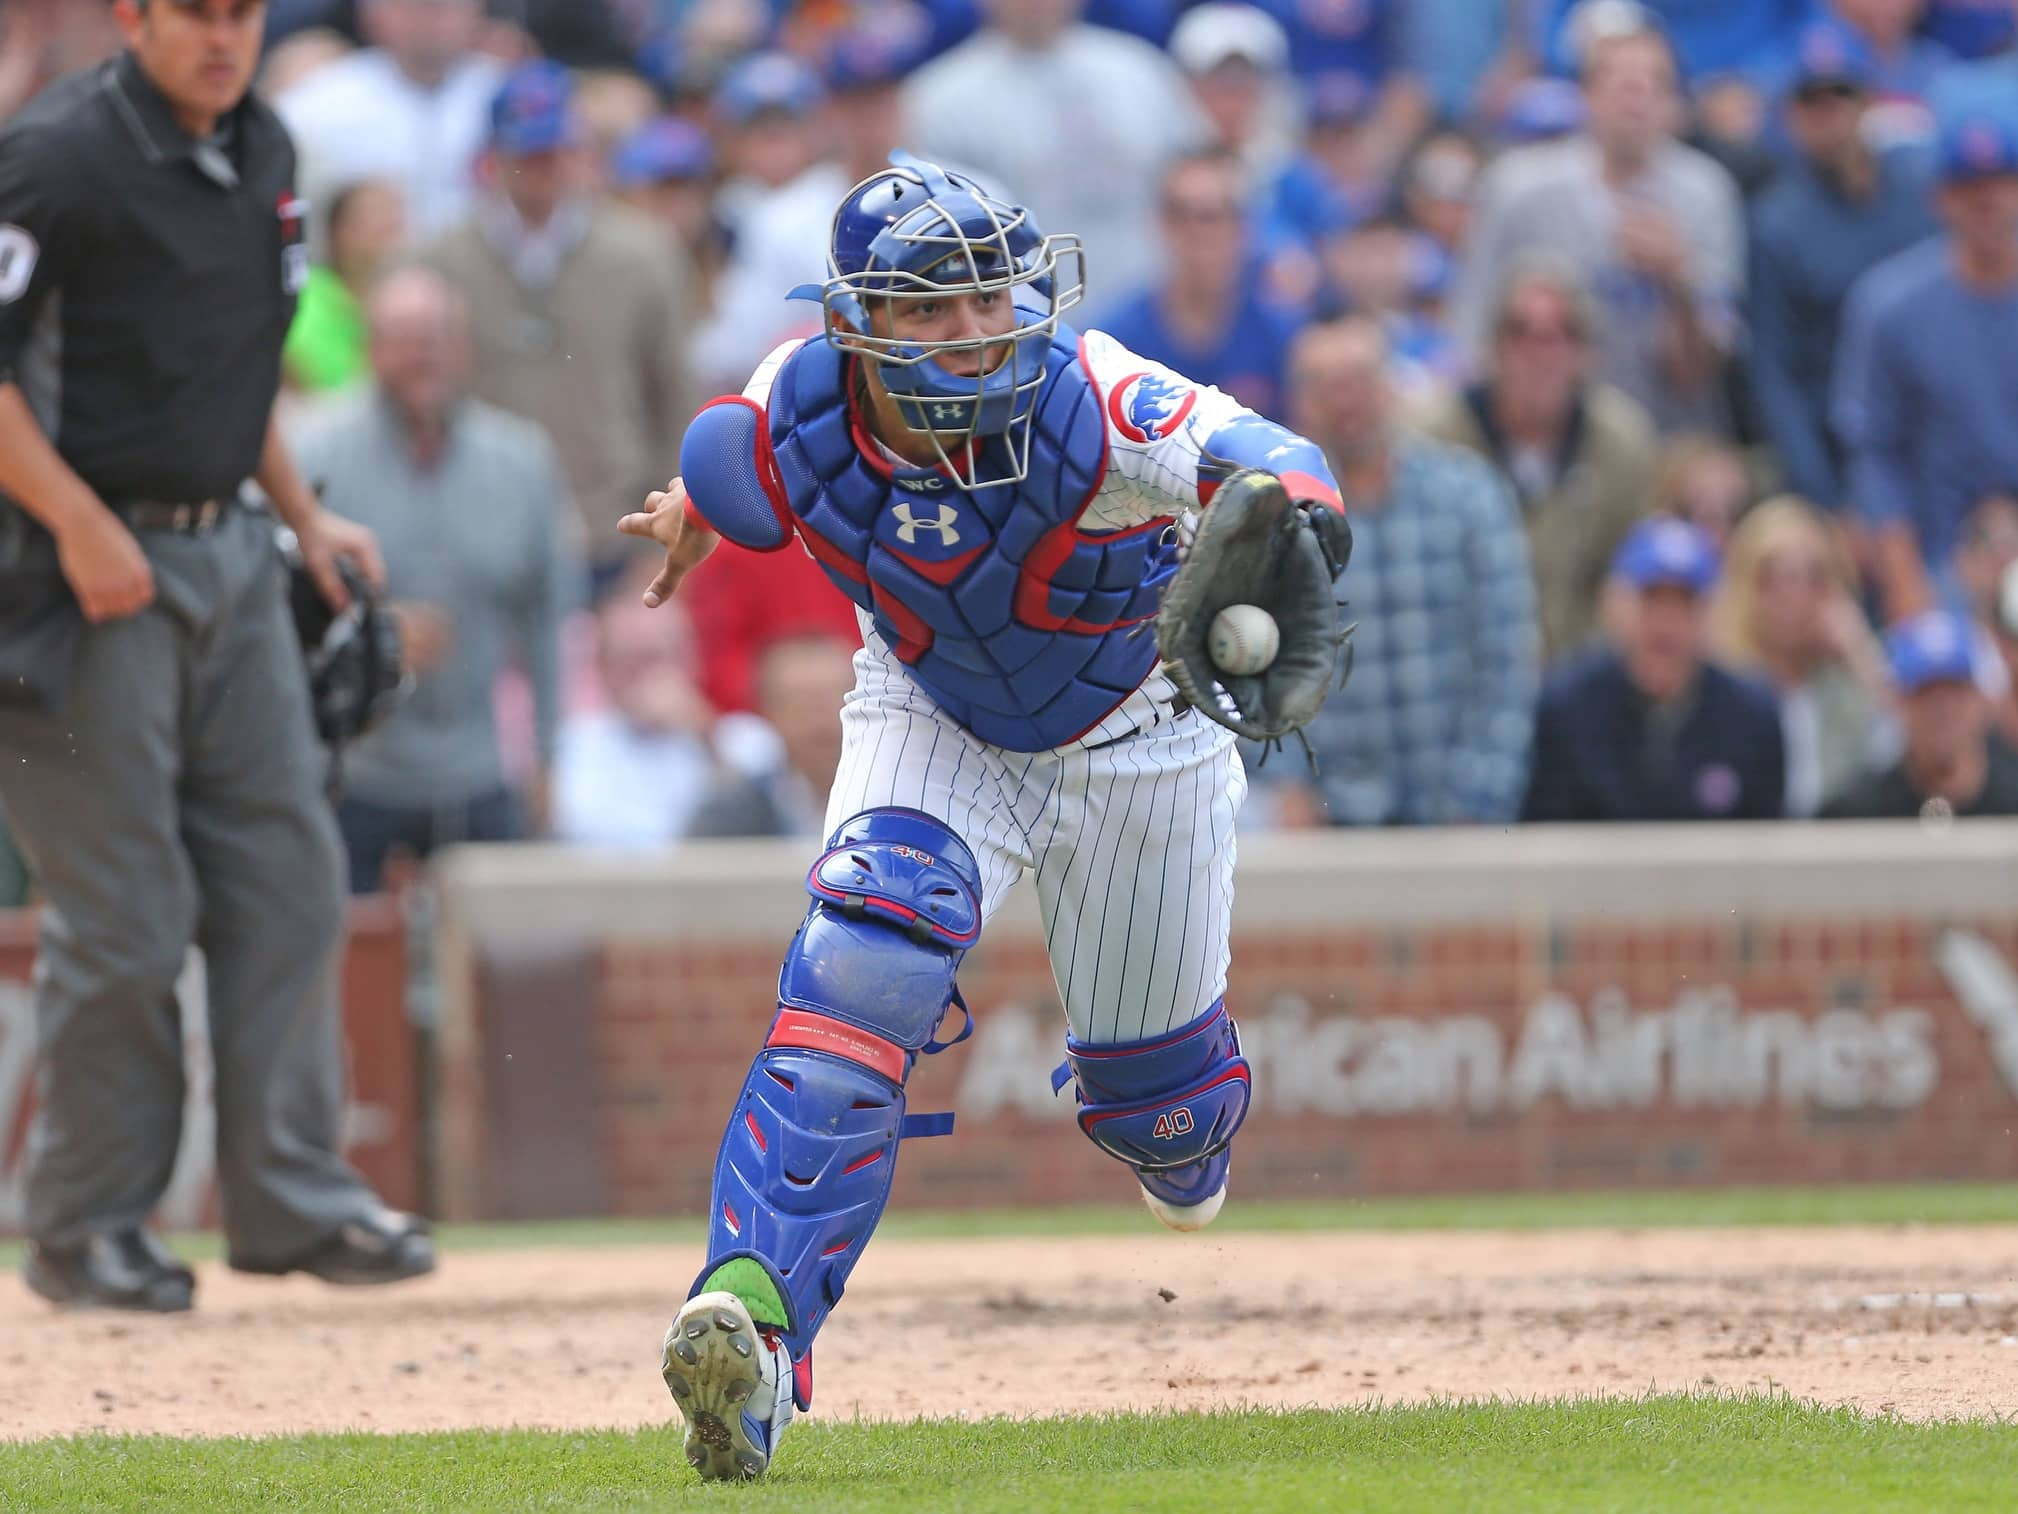 Chicago Cubs catcher Willson Contreras exited Wednesday's game with a hamstring injury.